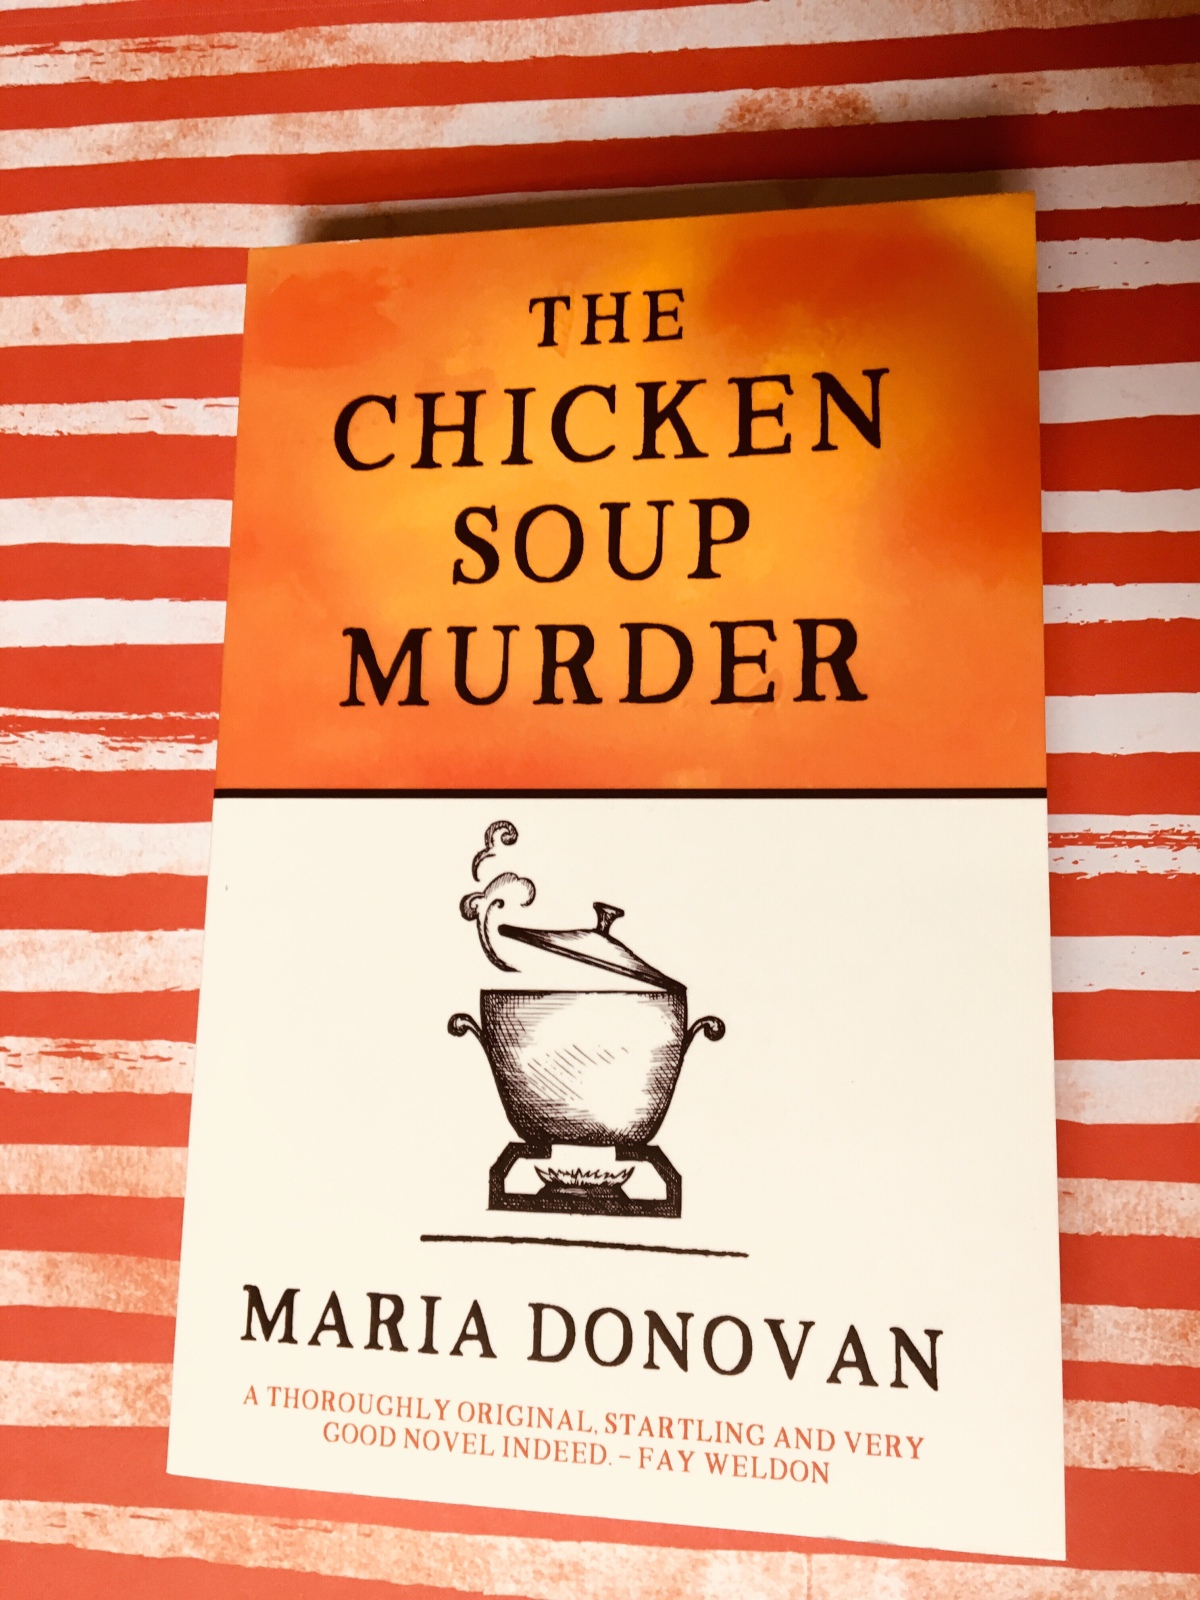 Review of The Chicken Soup Murder. Book by Maria Donovan. Review and photo by Rita E. Gould